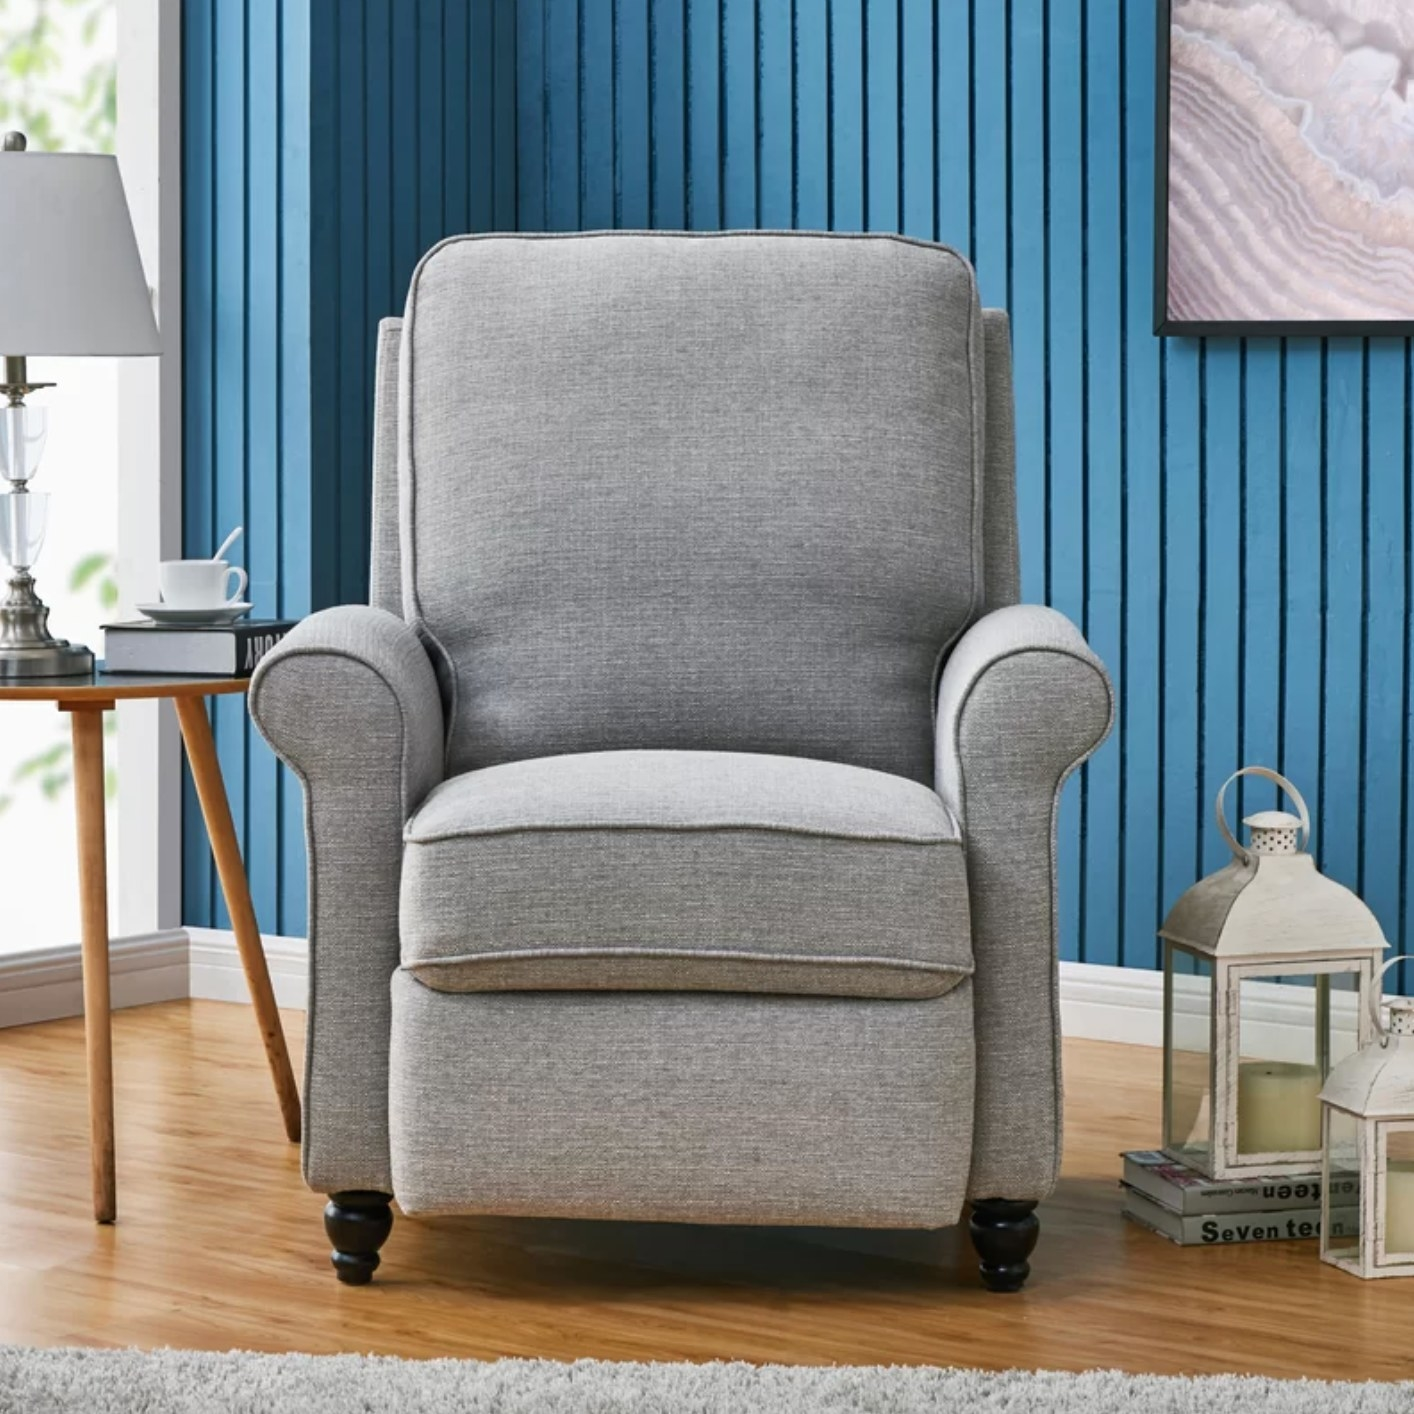 The manual recliner in dove gray polyester